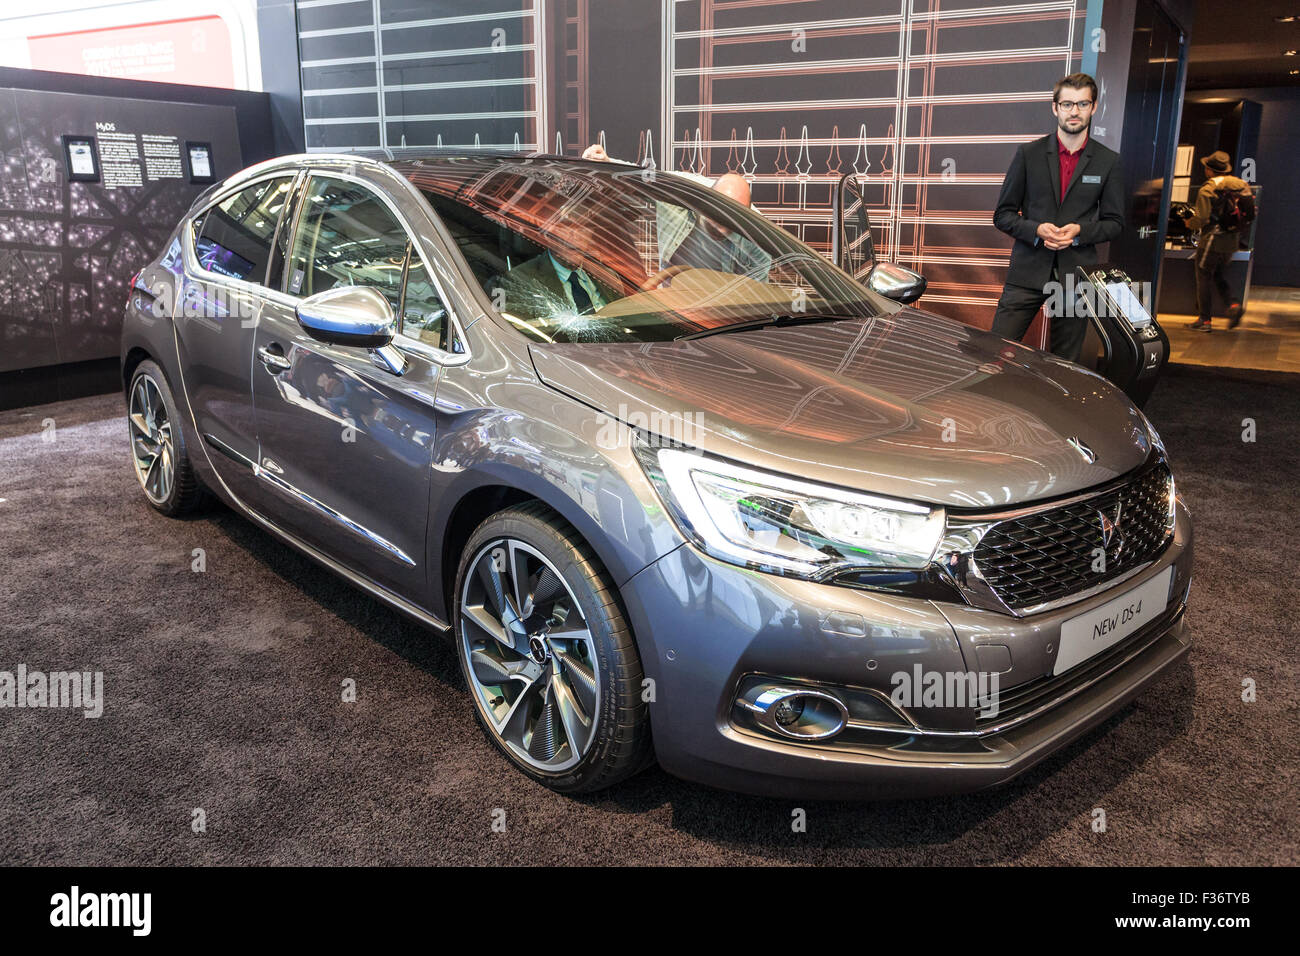 new citroen ds4 crossover at the iaa international motor show 2015 stock photo royalty free. Black Bedroom Furniture Sets. Home Design Ideas